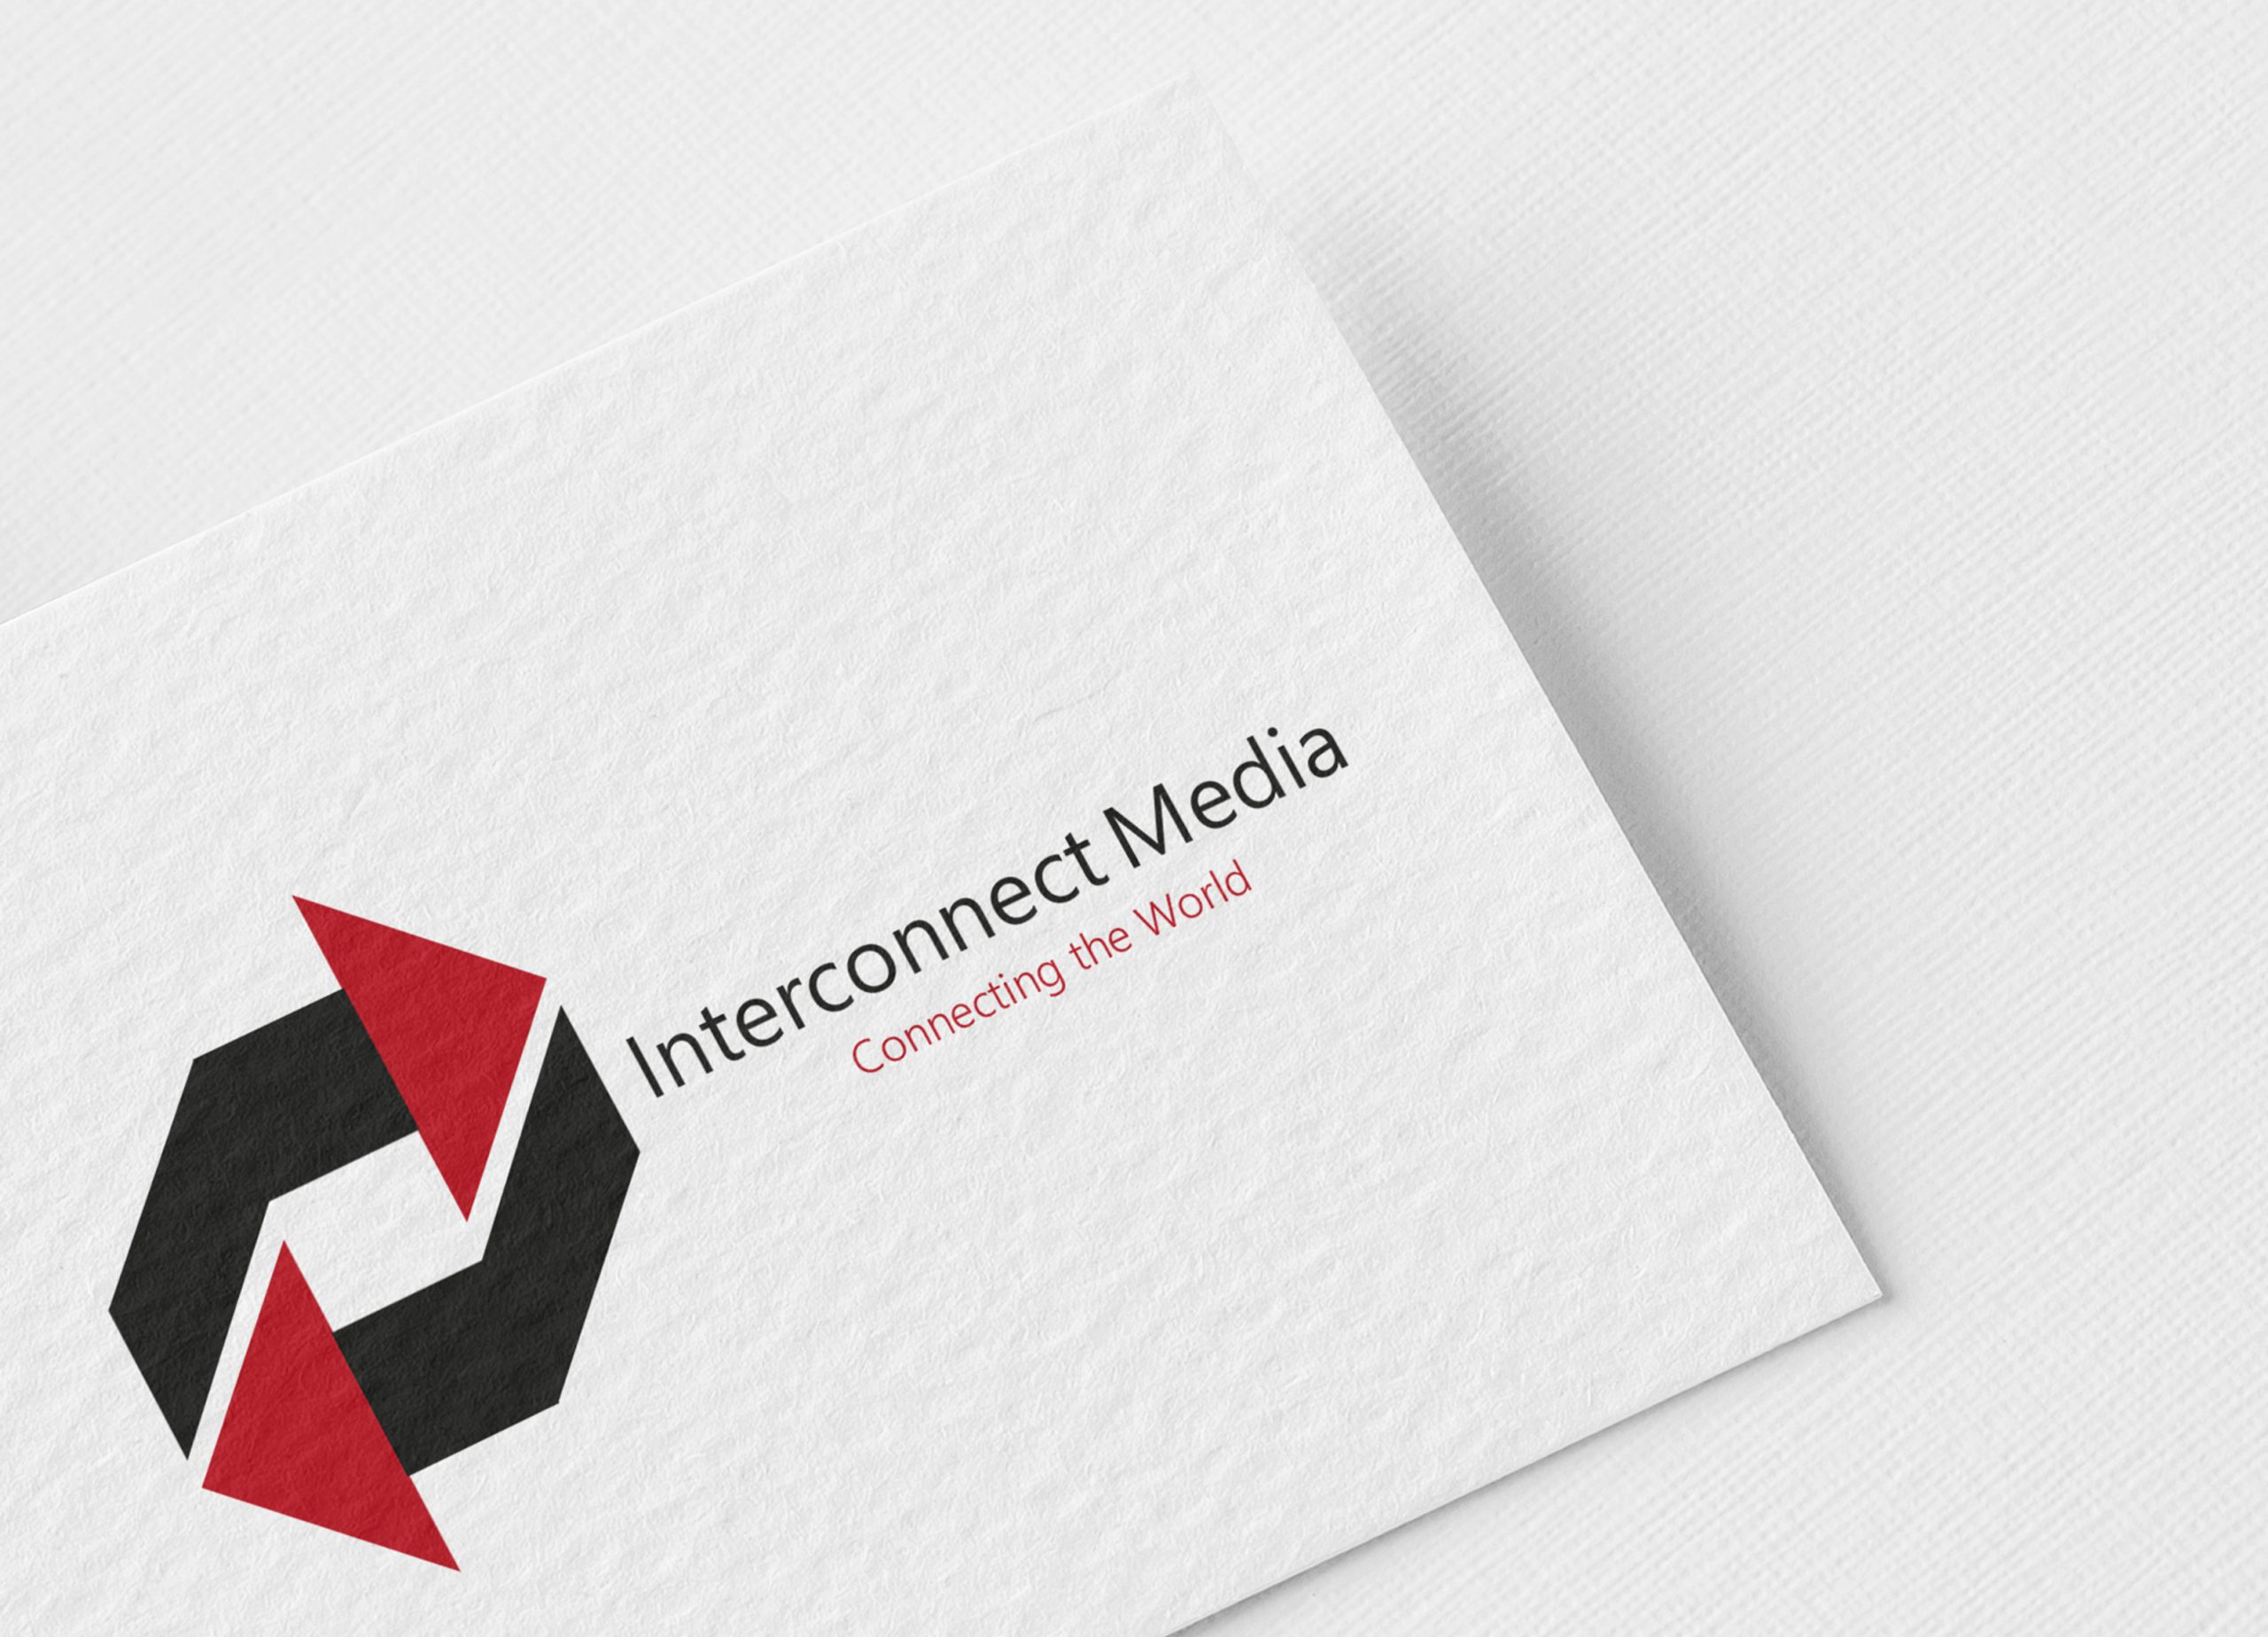 Interconnect-Media-Logo-Template